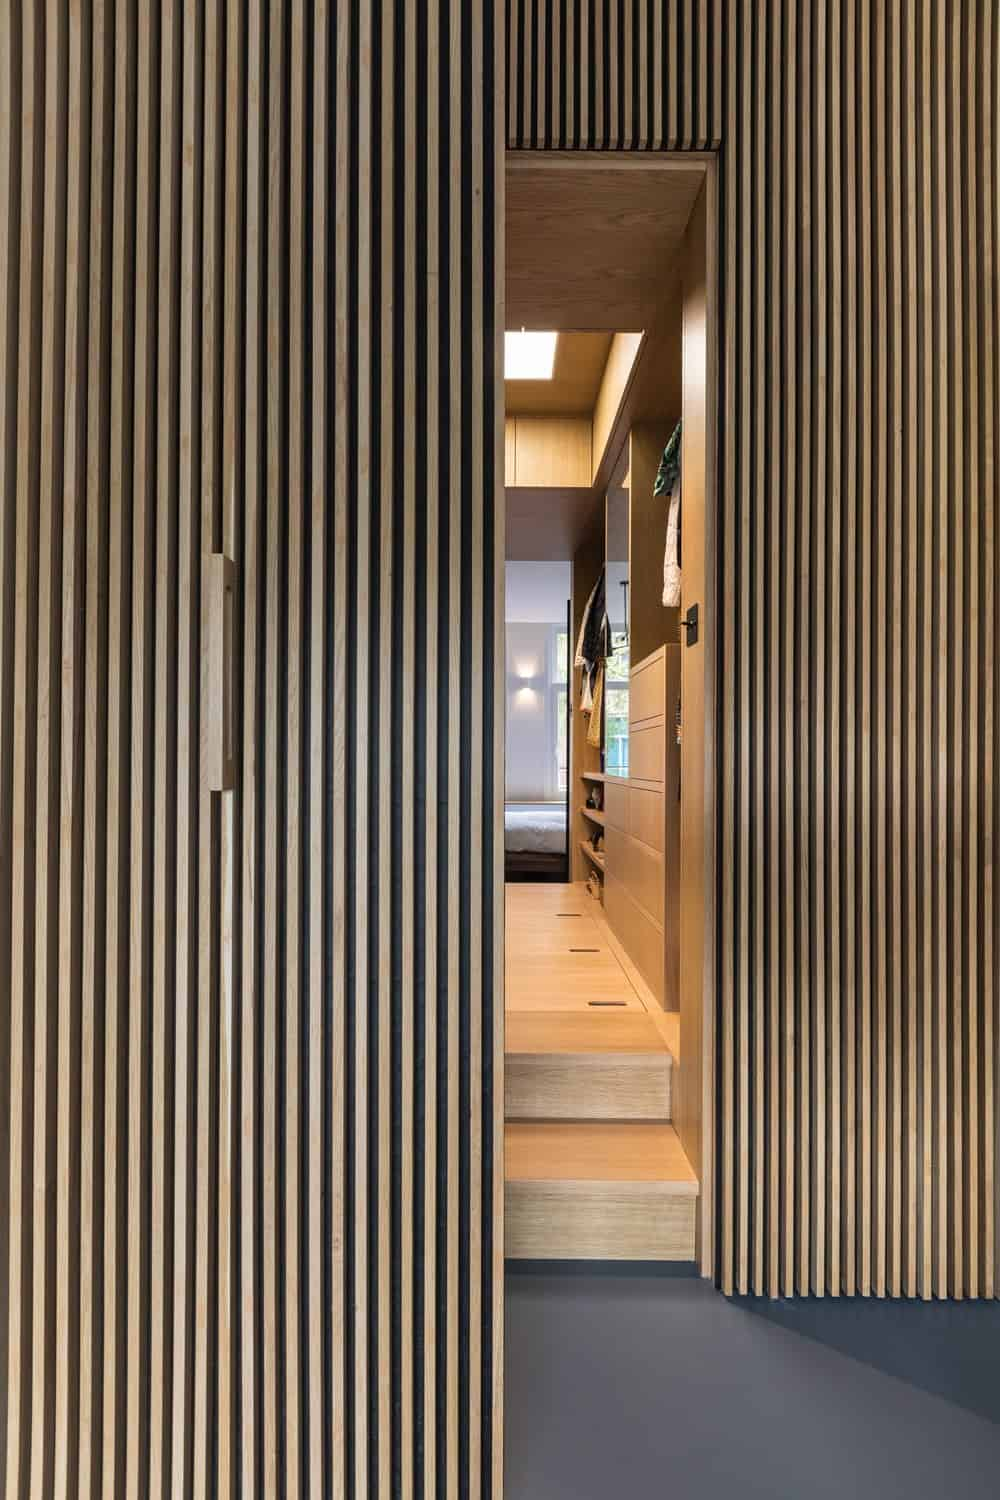 Walk-in closet in the Frans Halsstraat designed by Cantero Architecture.